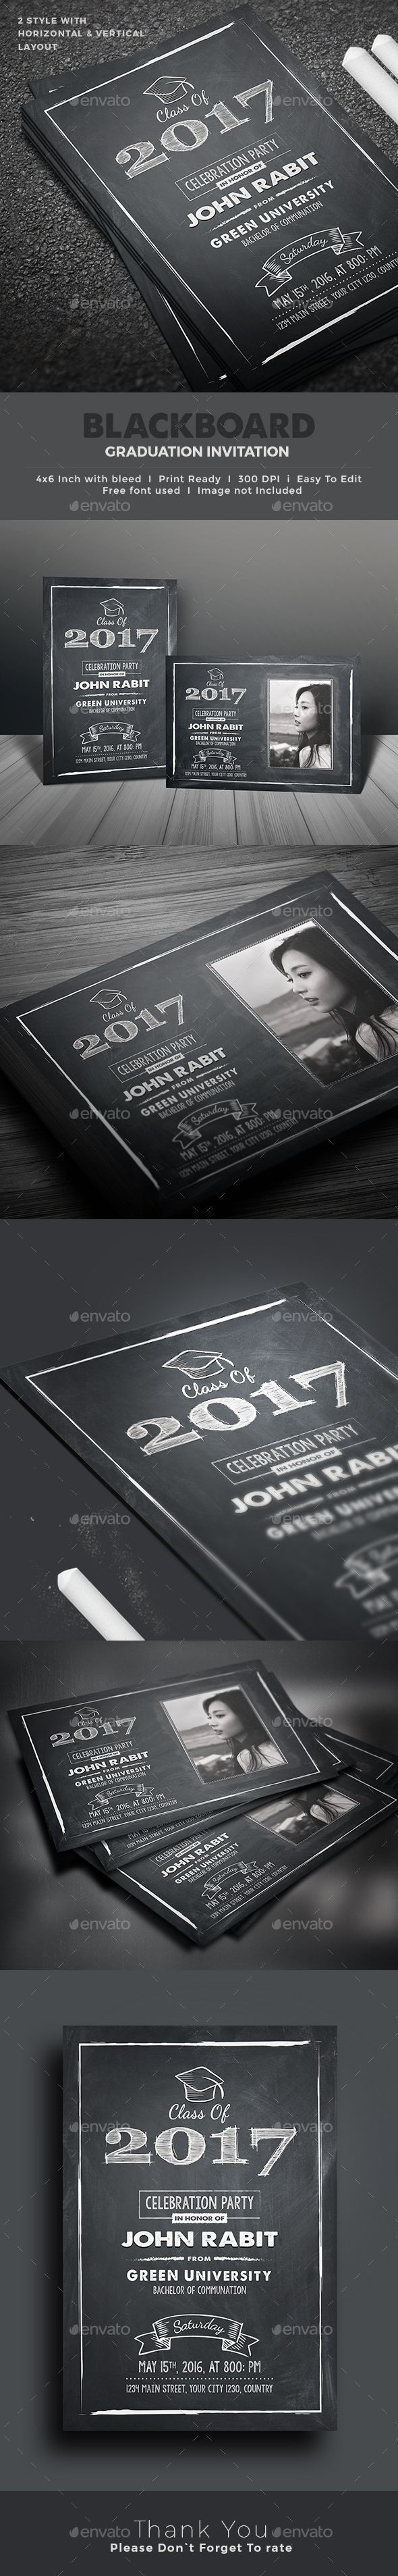 Graduation Invitation | Invitation card design, Template and Fonts